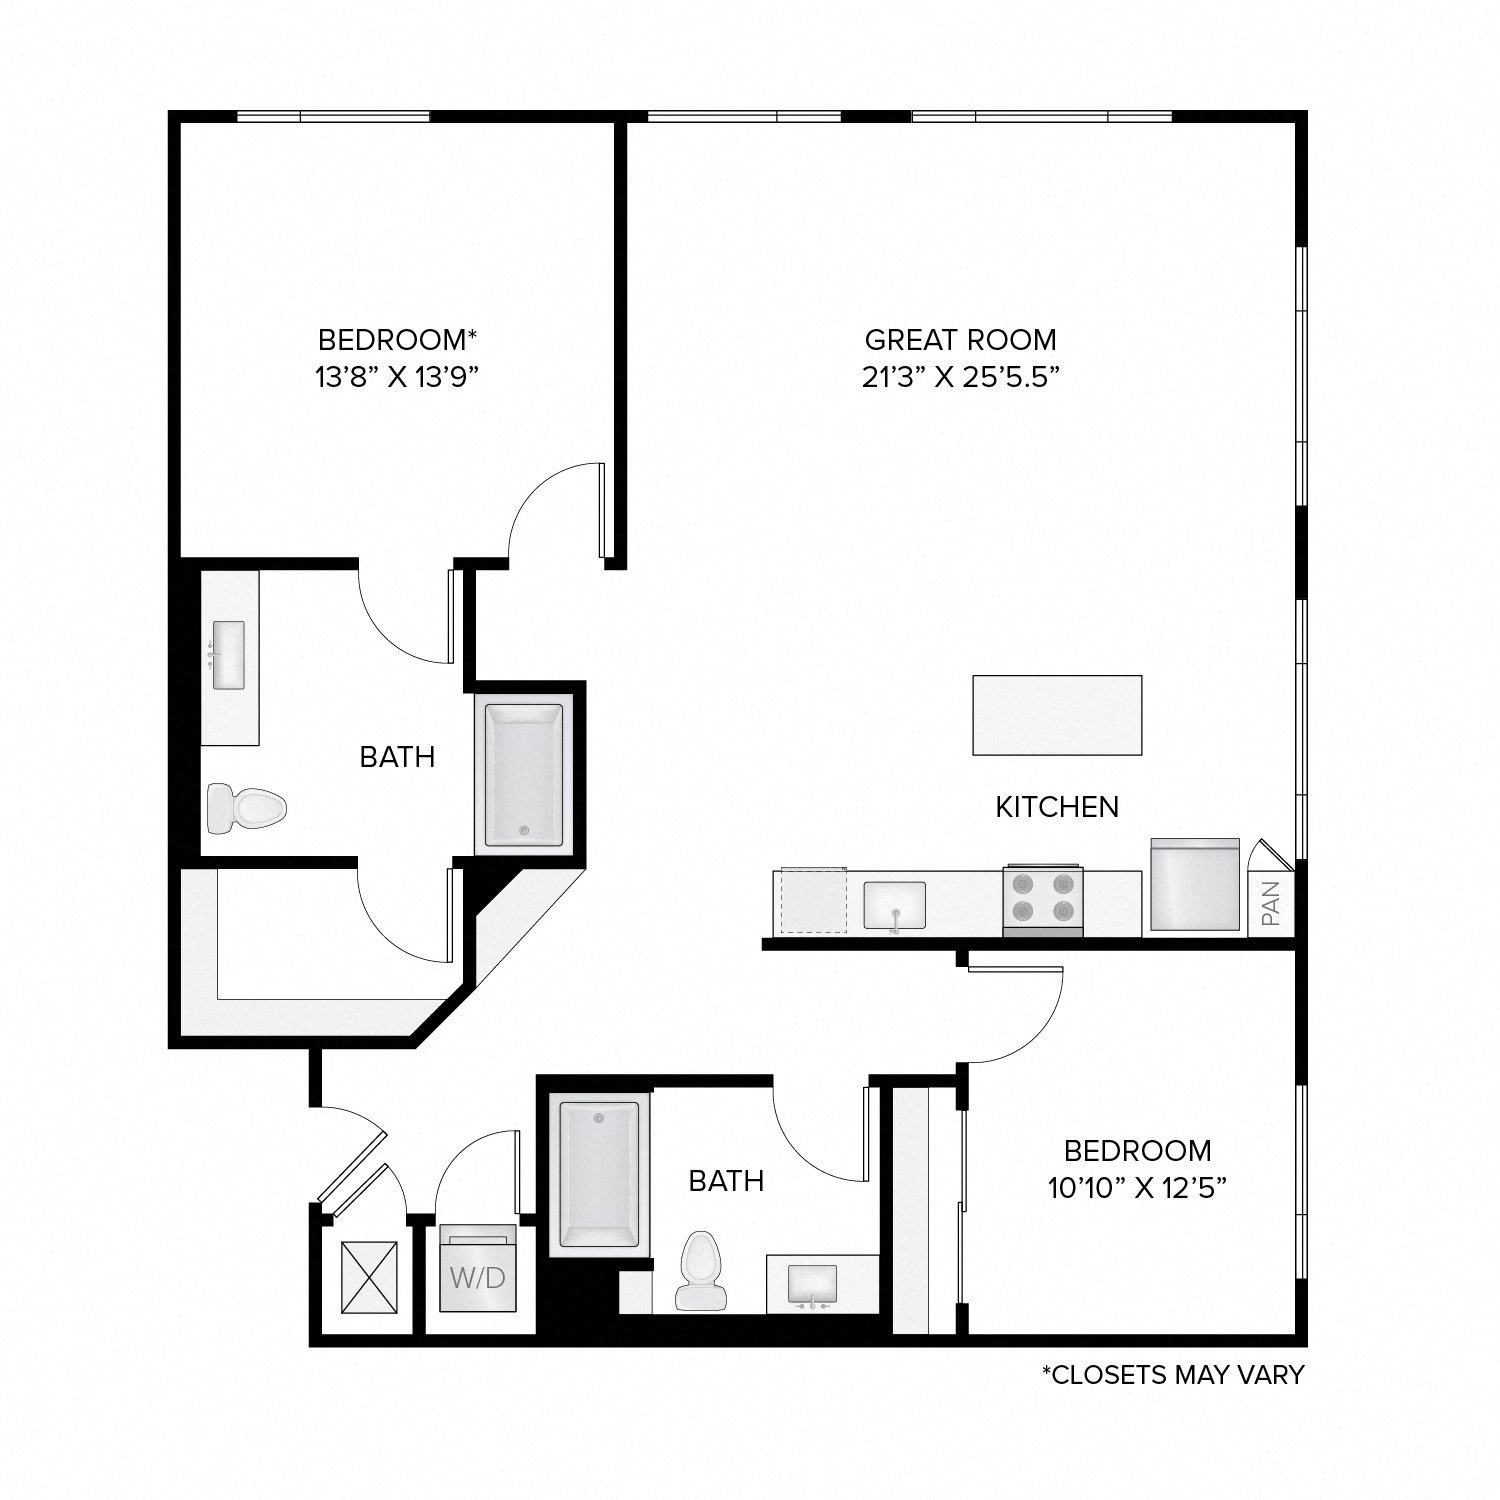 Diagram of the Washington Deluxe floor plan. Two bedrooms, two bathrooms, an open kitchen and living area, and a washer dryer.